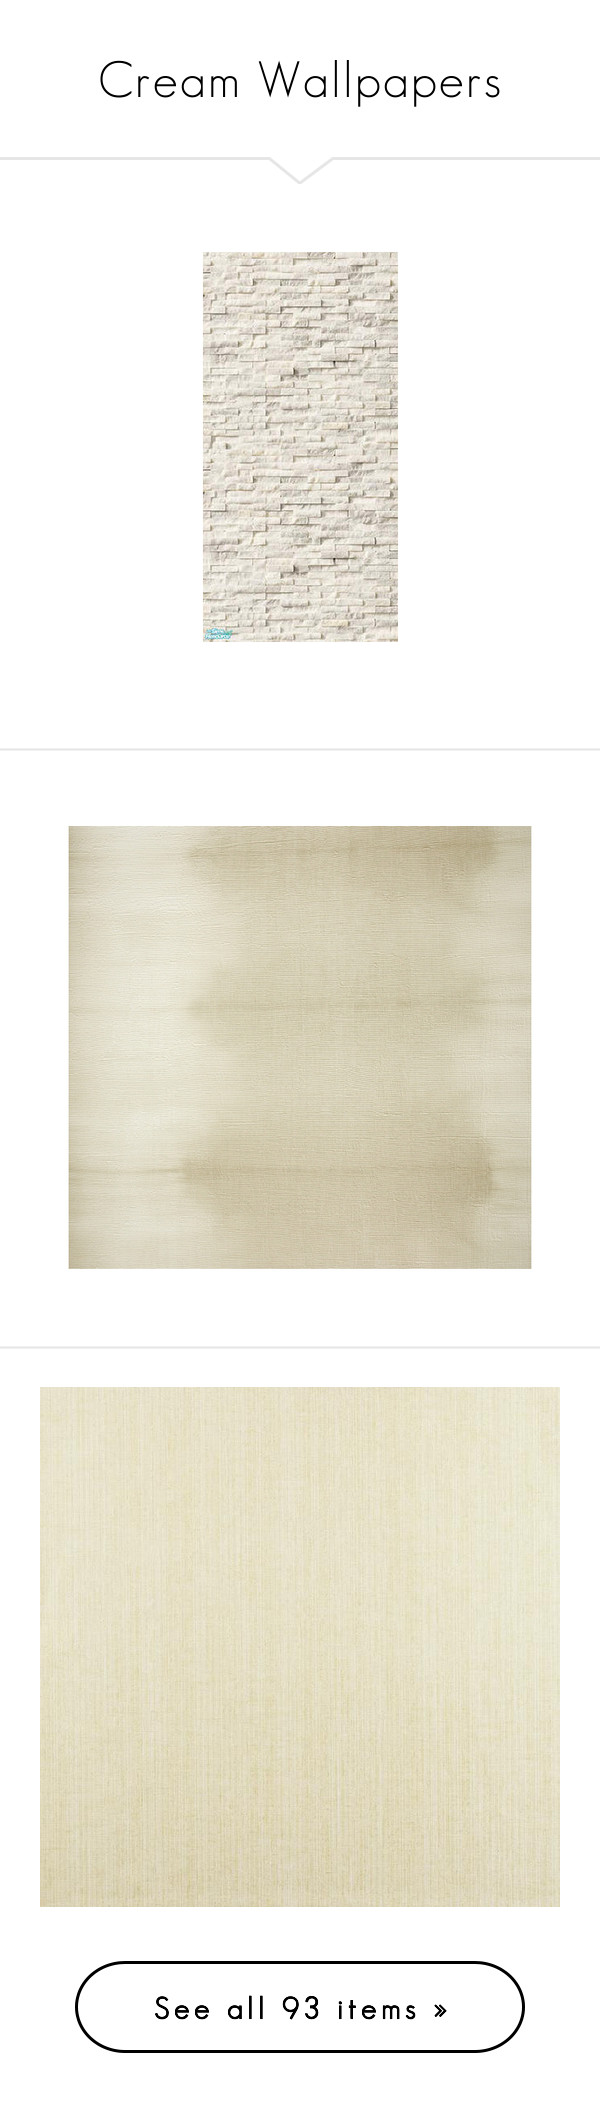 Cream Wallpapers By Lailoooo Liked On Polyvore Featuring